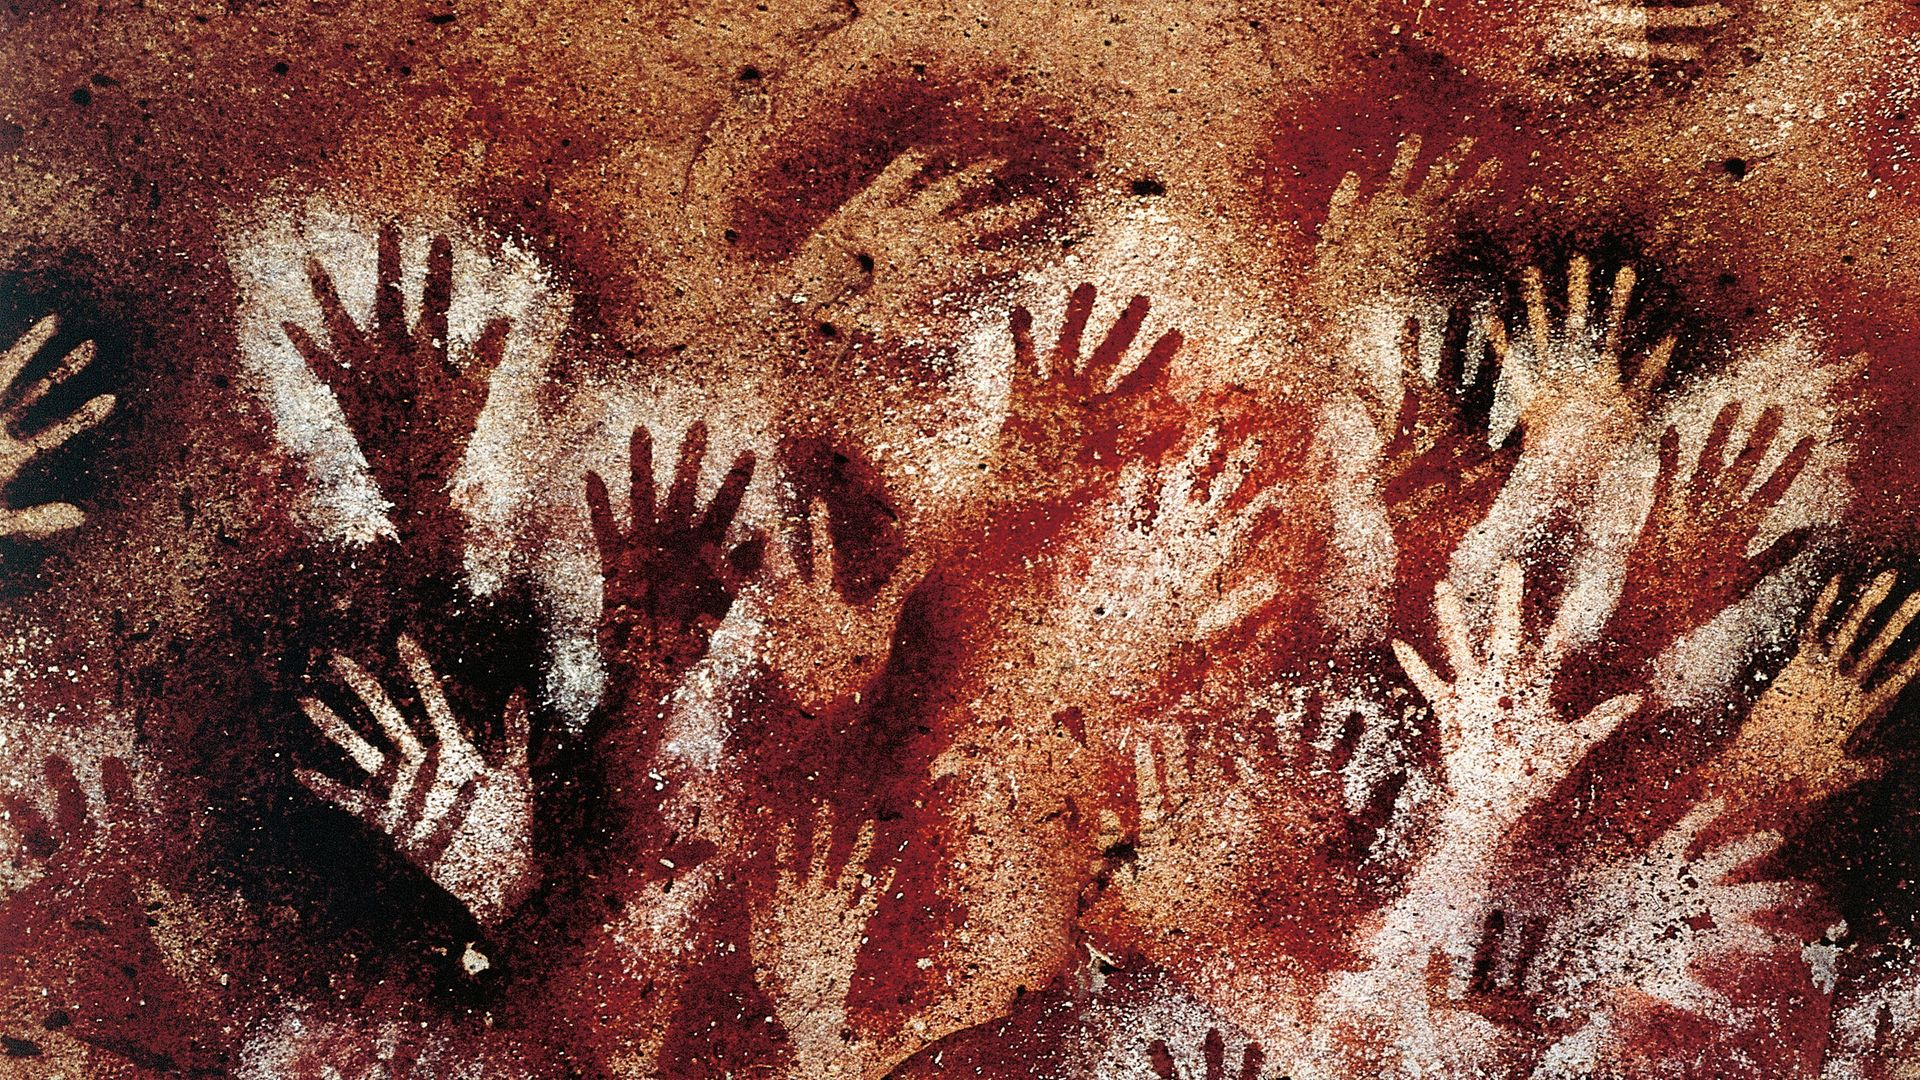 Paintings from the Cueva de las Manos ('Cave of the Hands'), in southern Argentina - Credit: De Agostini via Getty Images